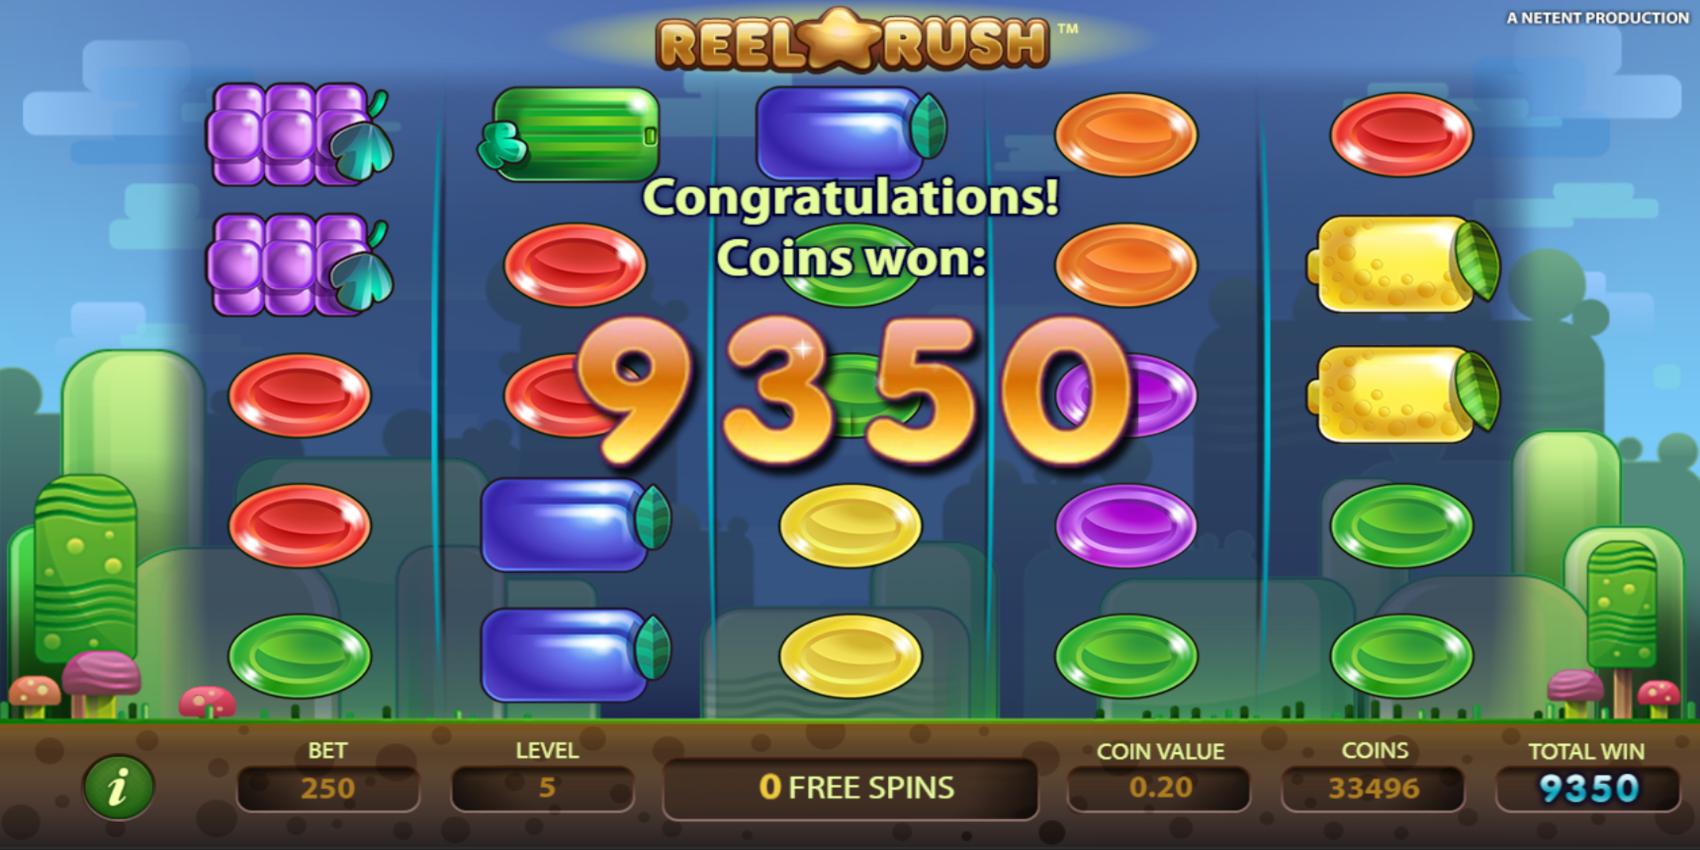 Reel Rush slot game 3125 Paylines Big Win